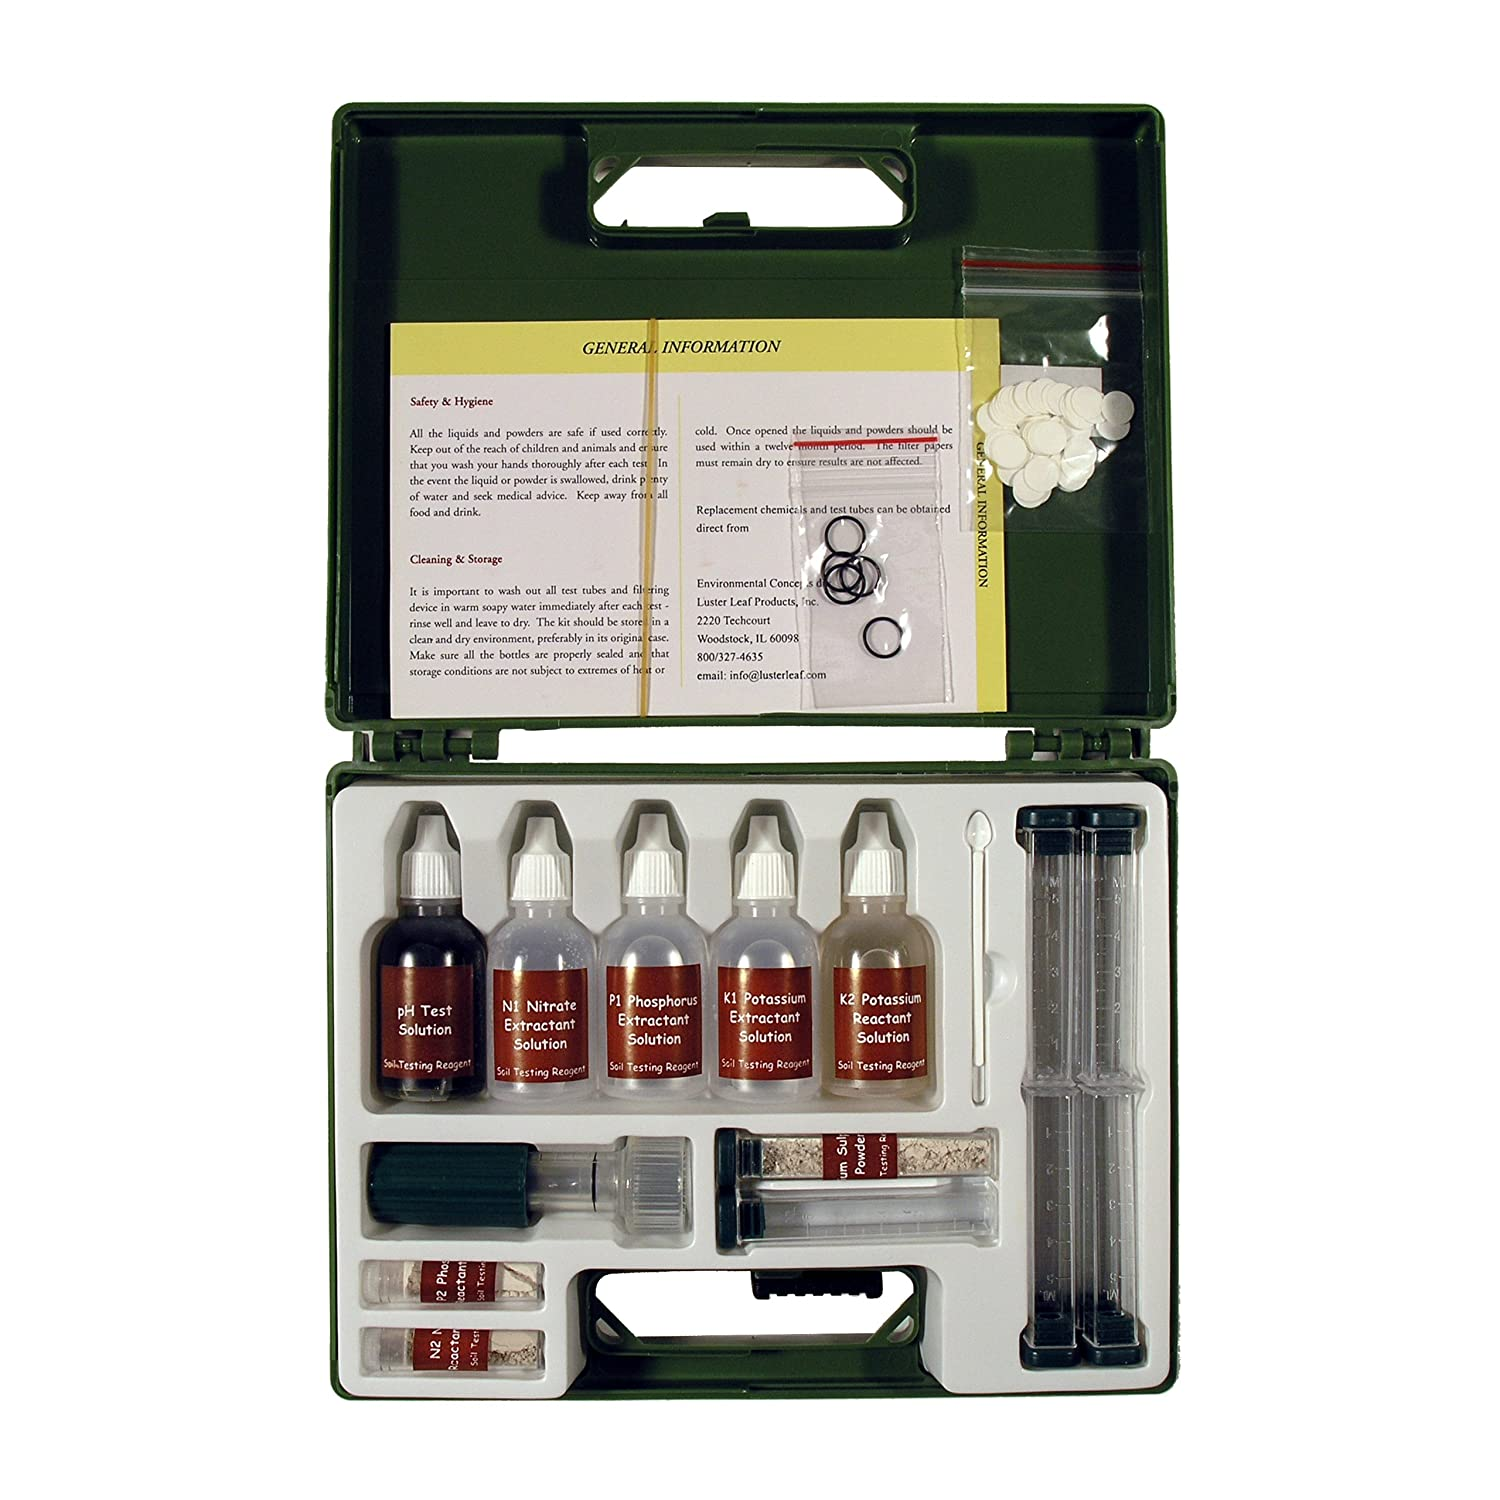 Environmental Concepts 1663 Professional Soil Test Kit with 80 Tests